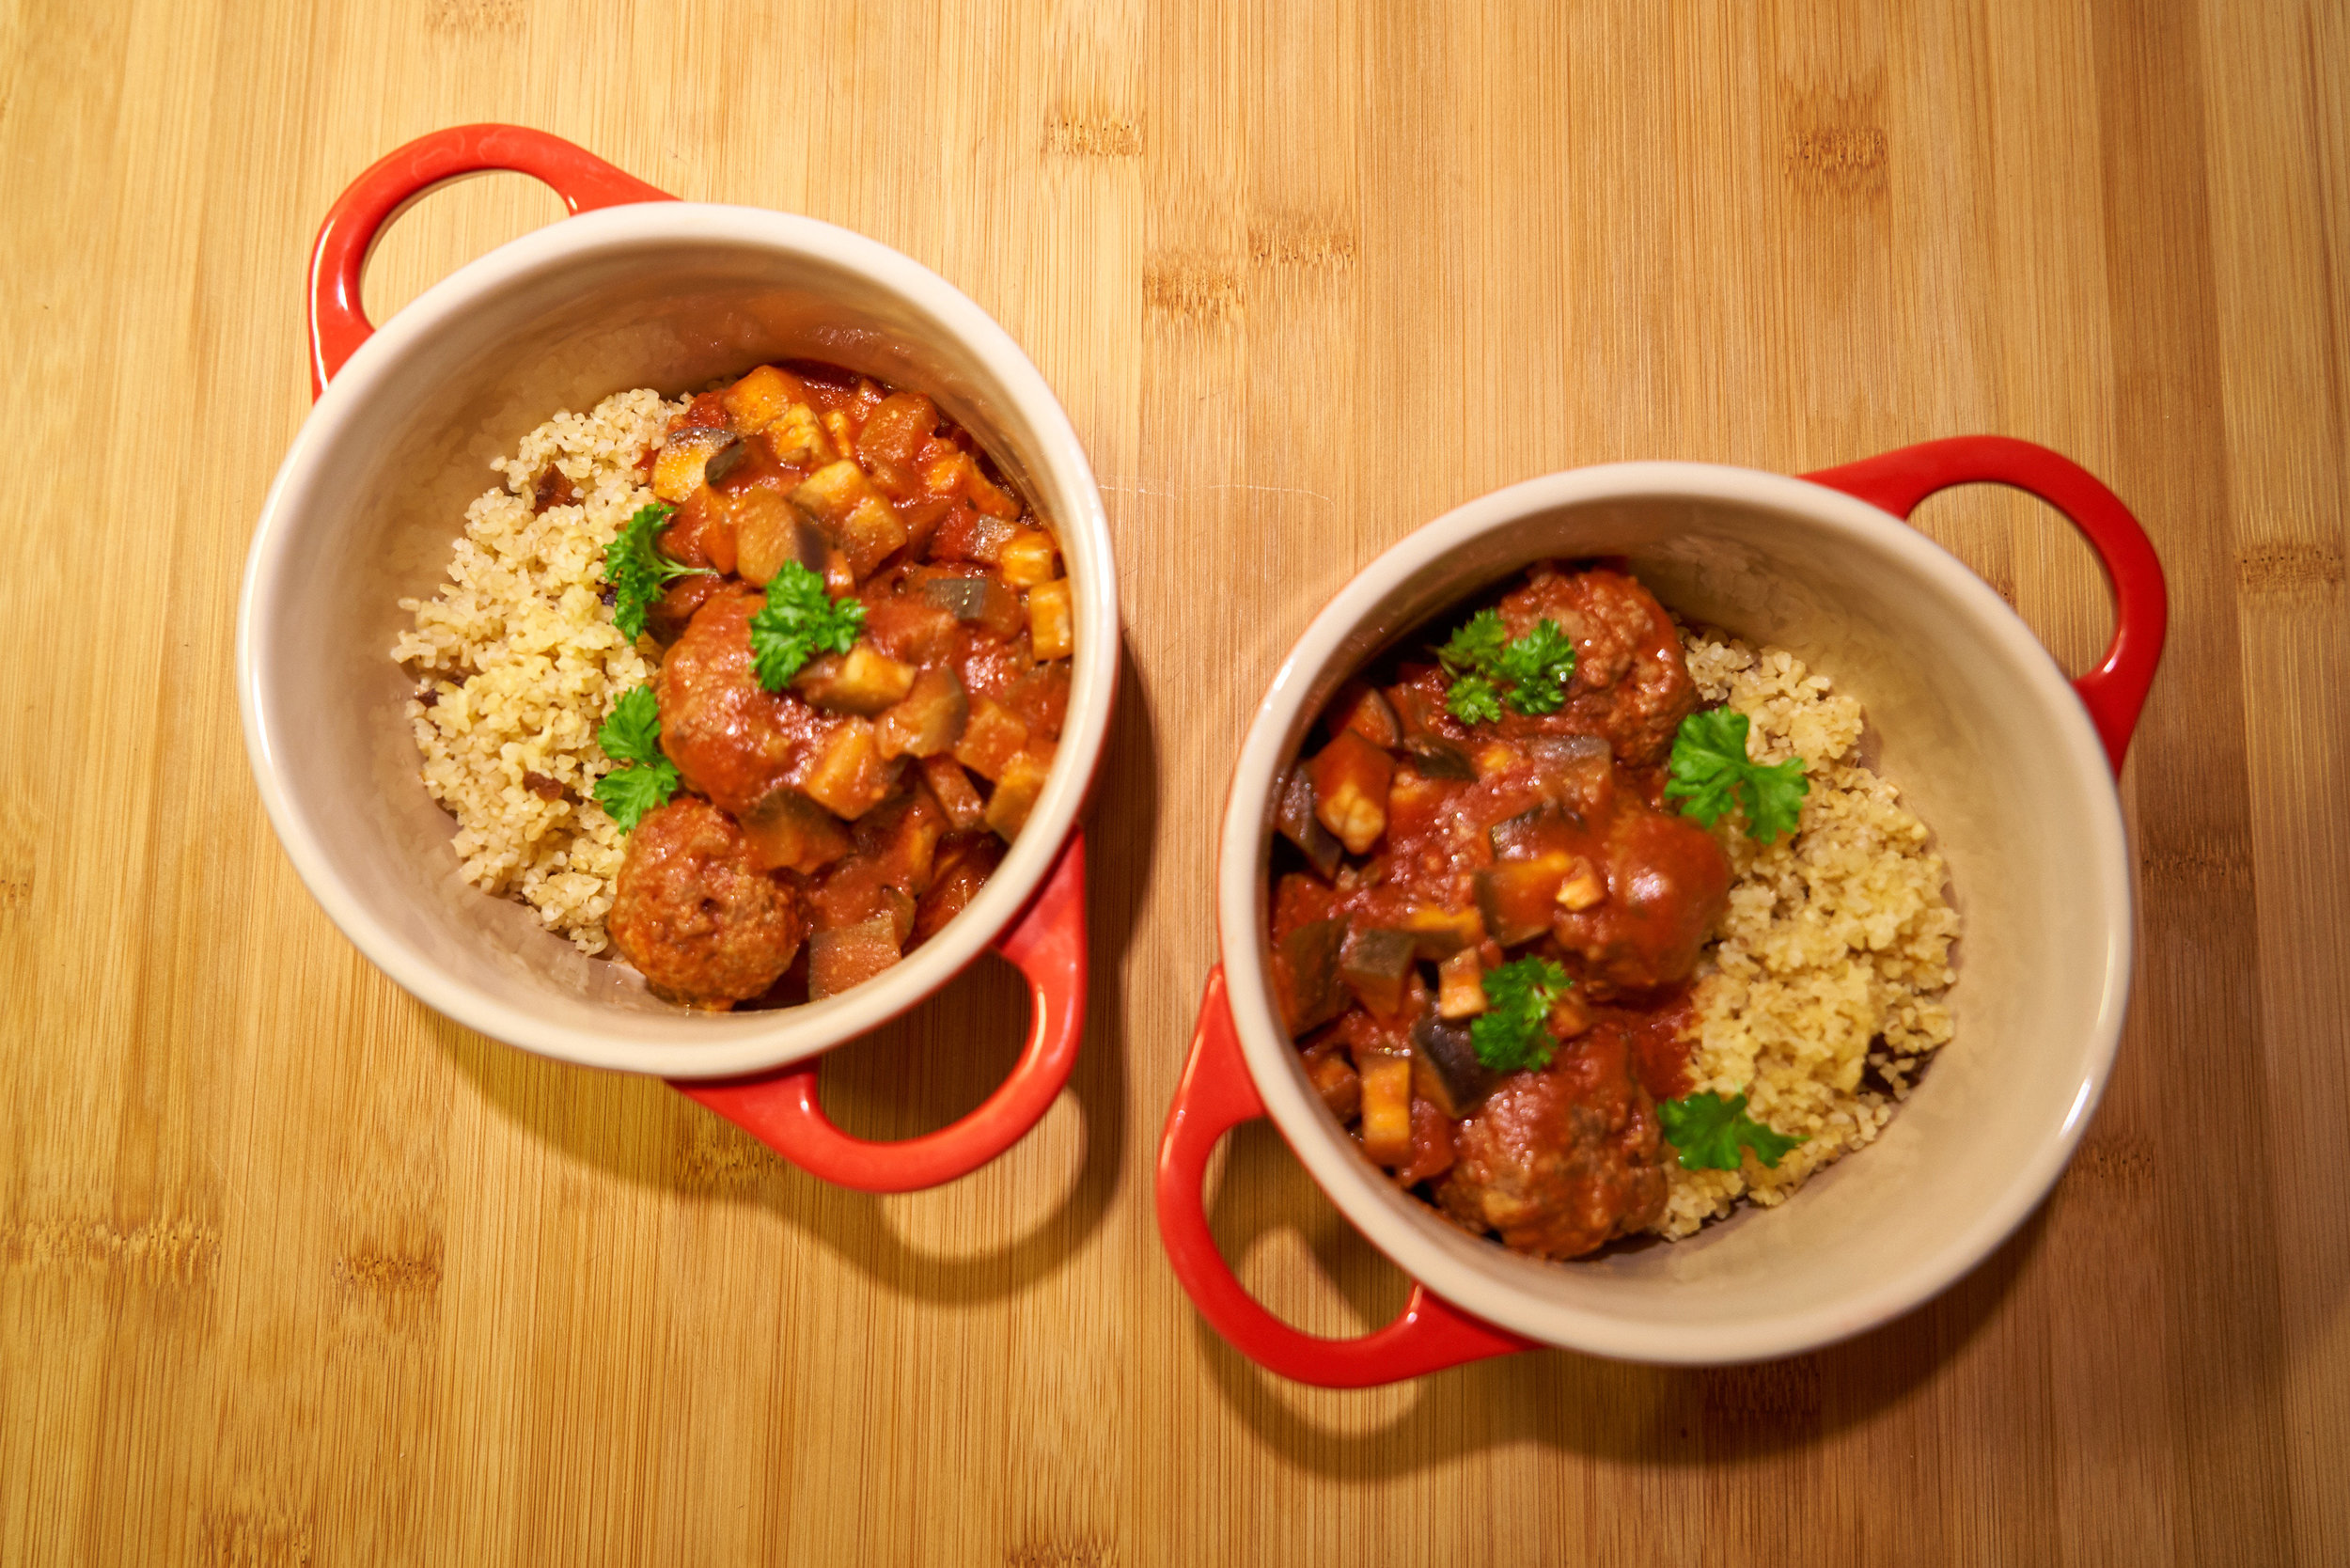 Moroccan Inspired Meatballs with Eggplant in Tomato Sauce | In Carina's Kitchen